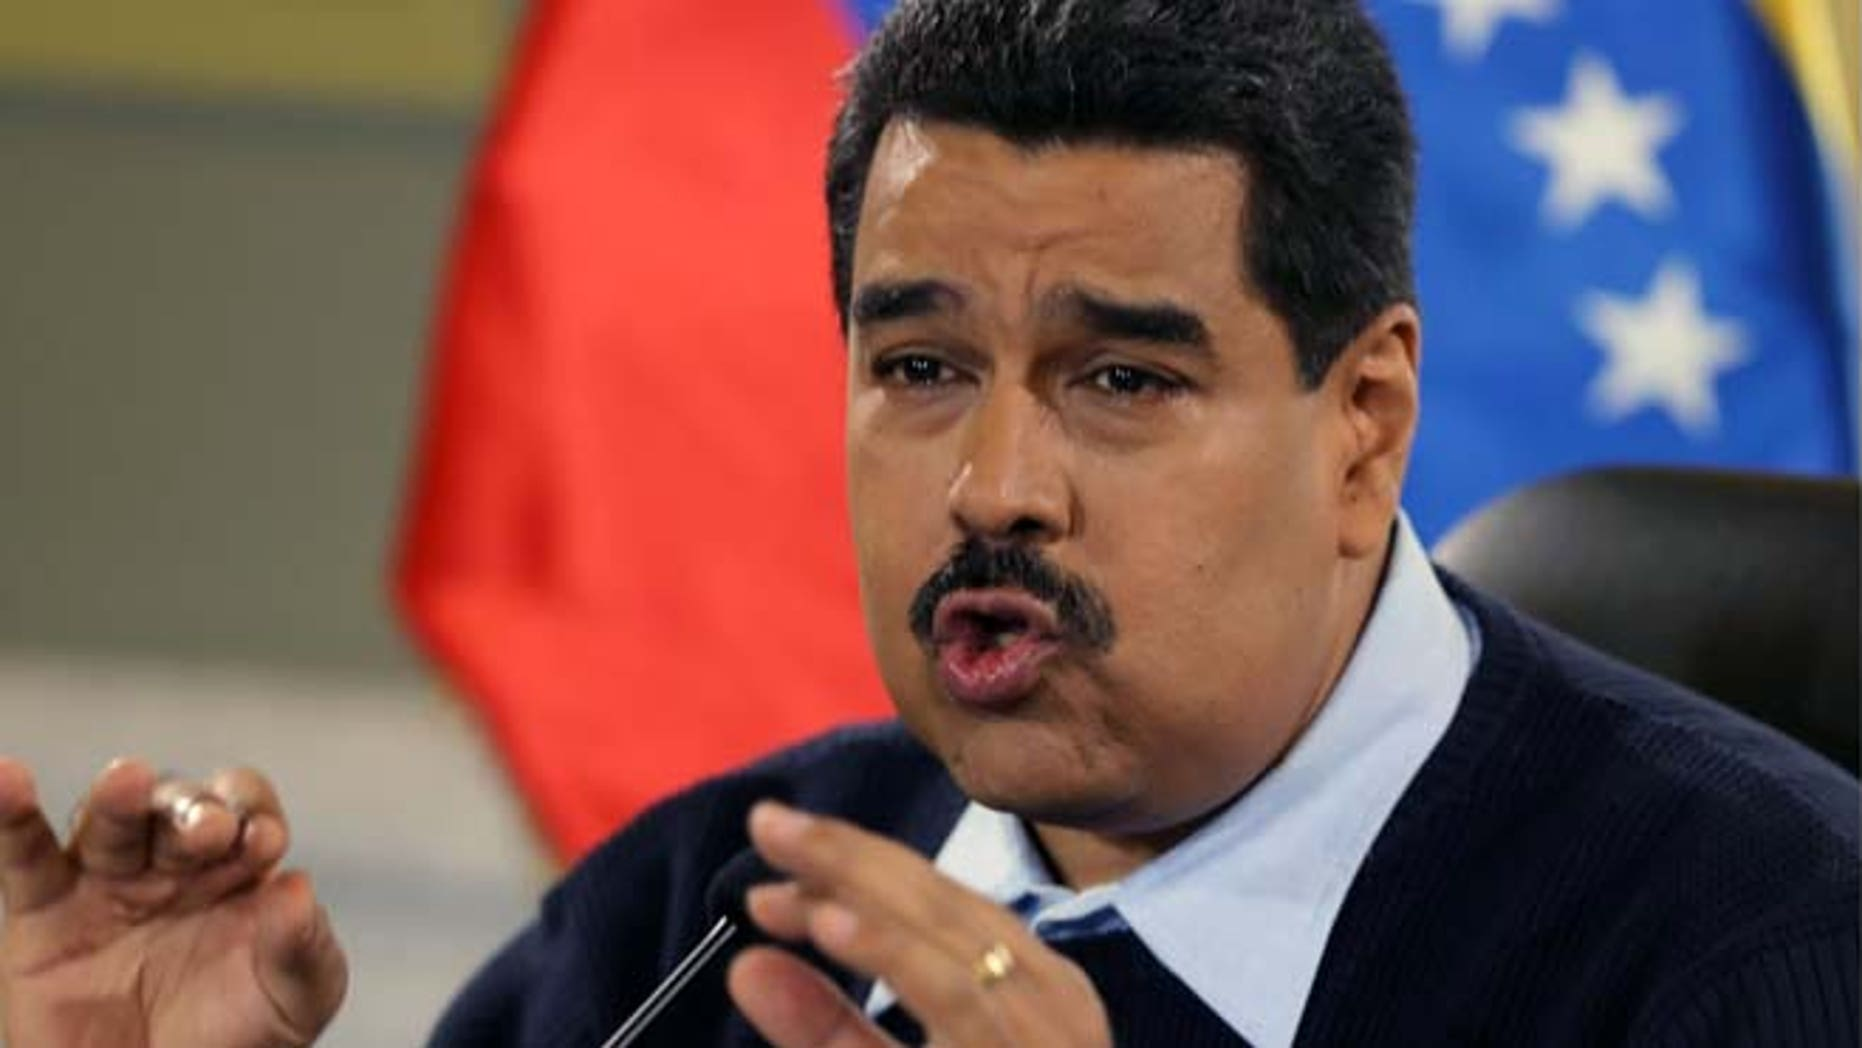 FILE - In this Aug. 24, 2015 file photo, Venezuela's President Nicolas Maduro gives a news conference at Miraflores presidential palace in Caracas, Venezuela. On Sunday, Oct. 18, 2015, Maduro called for prosecution of Lorenzo Mendoza, Venezuelaâs biggest businessman, president of the Empresas Polar conglomerate, for allegedly conspiring to destabilize his government. (AP Photo/Fernando Llano, File)